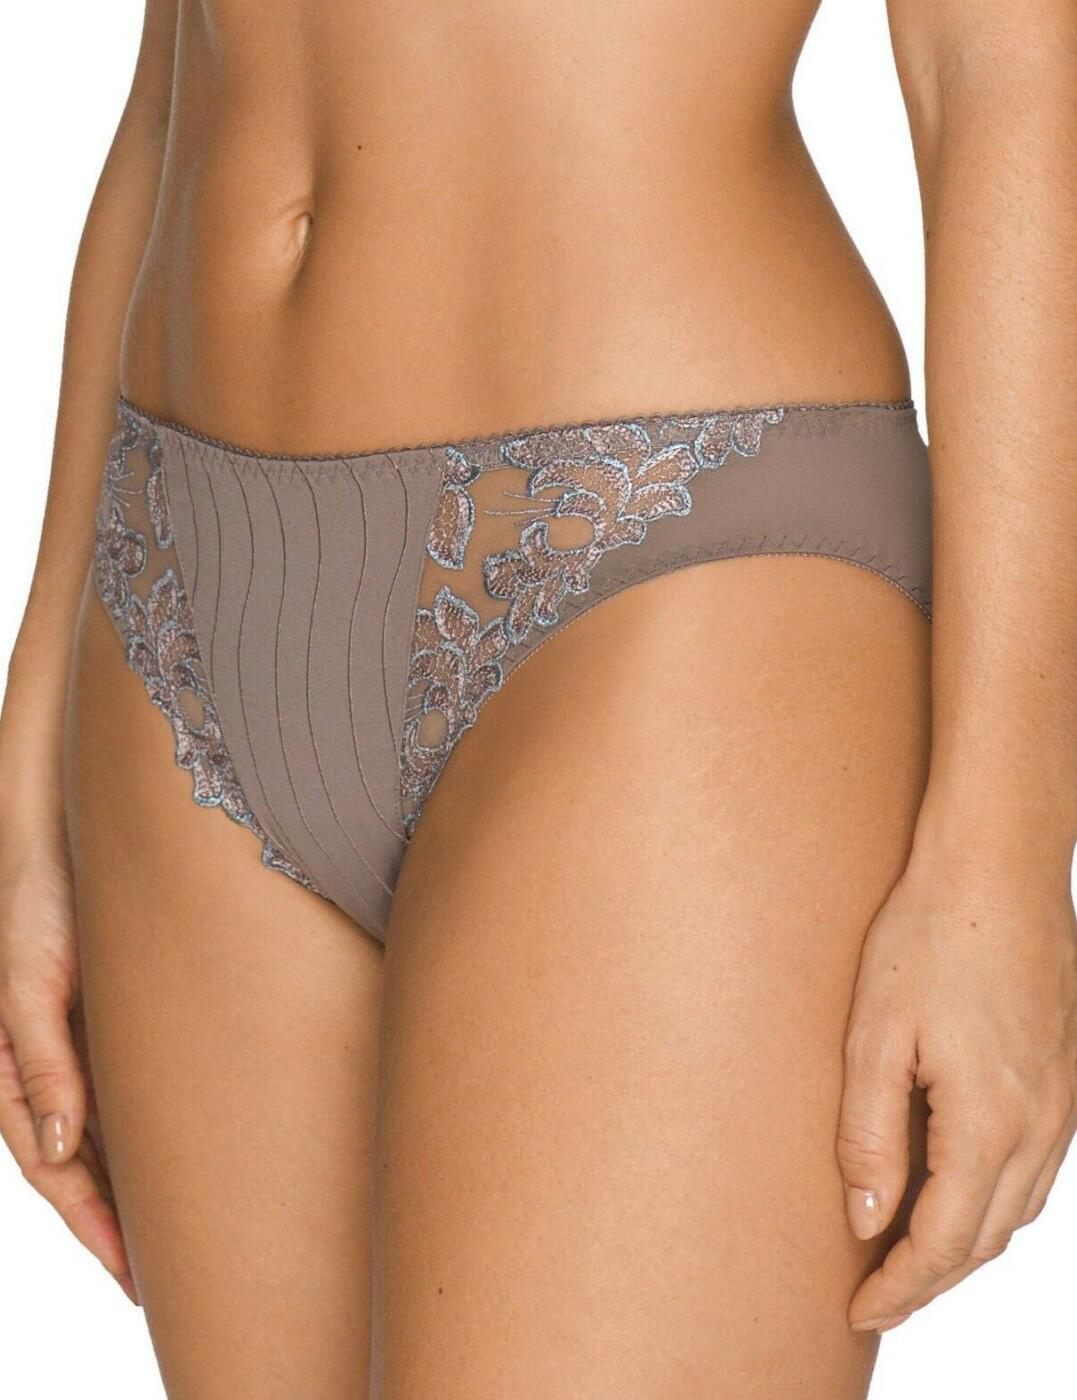 Prima Donna Deauville Rio Briefs Knickers 0561810 New Luxury Womens Lingerie